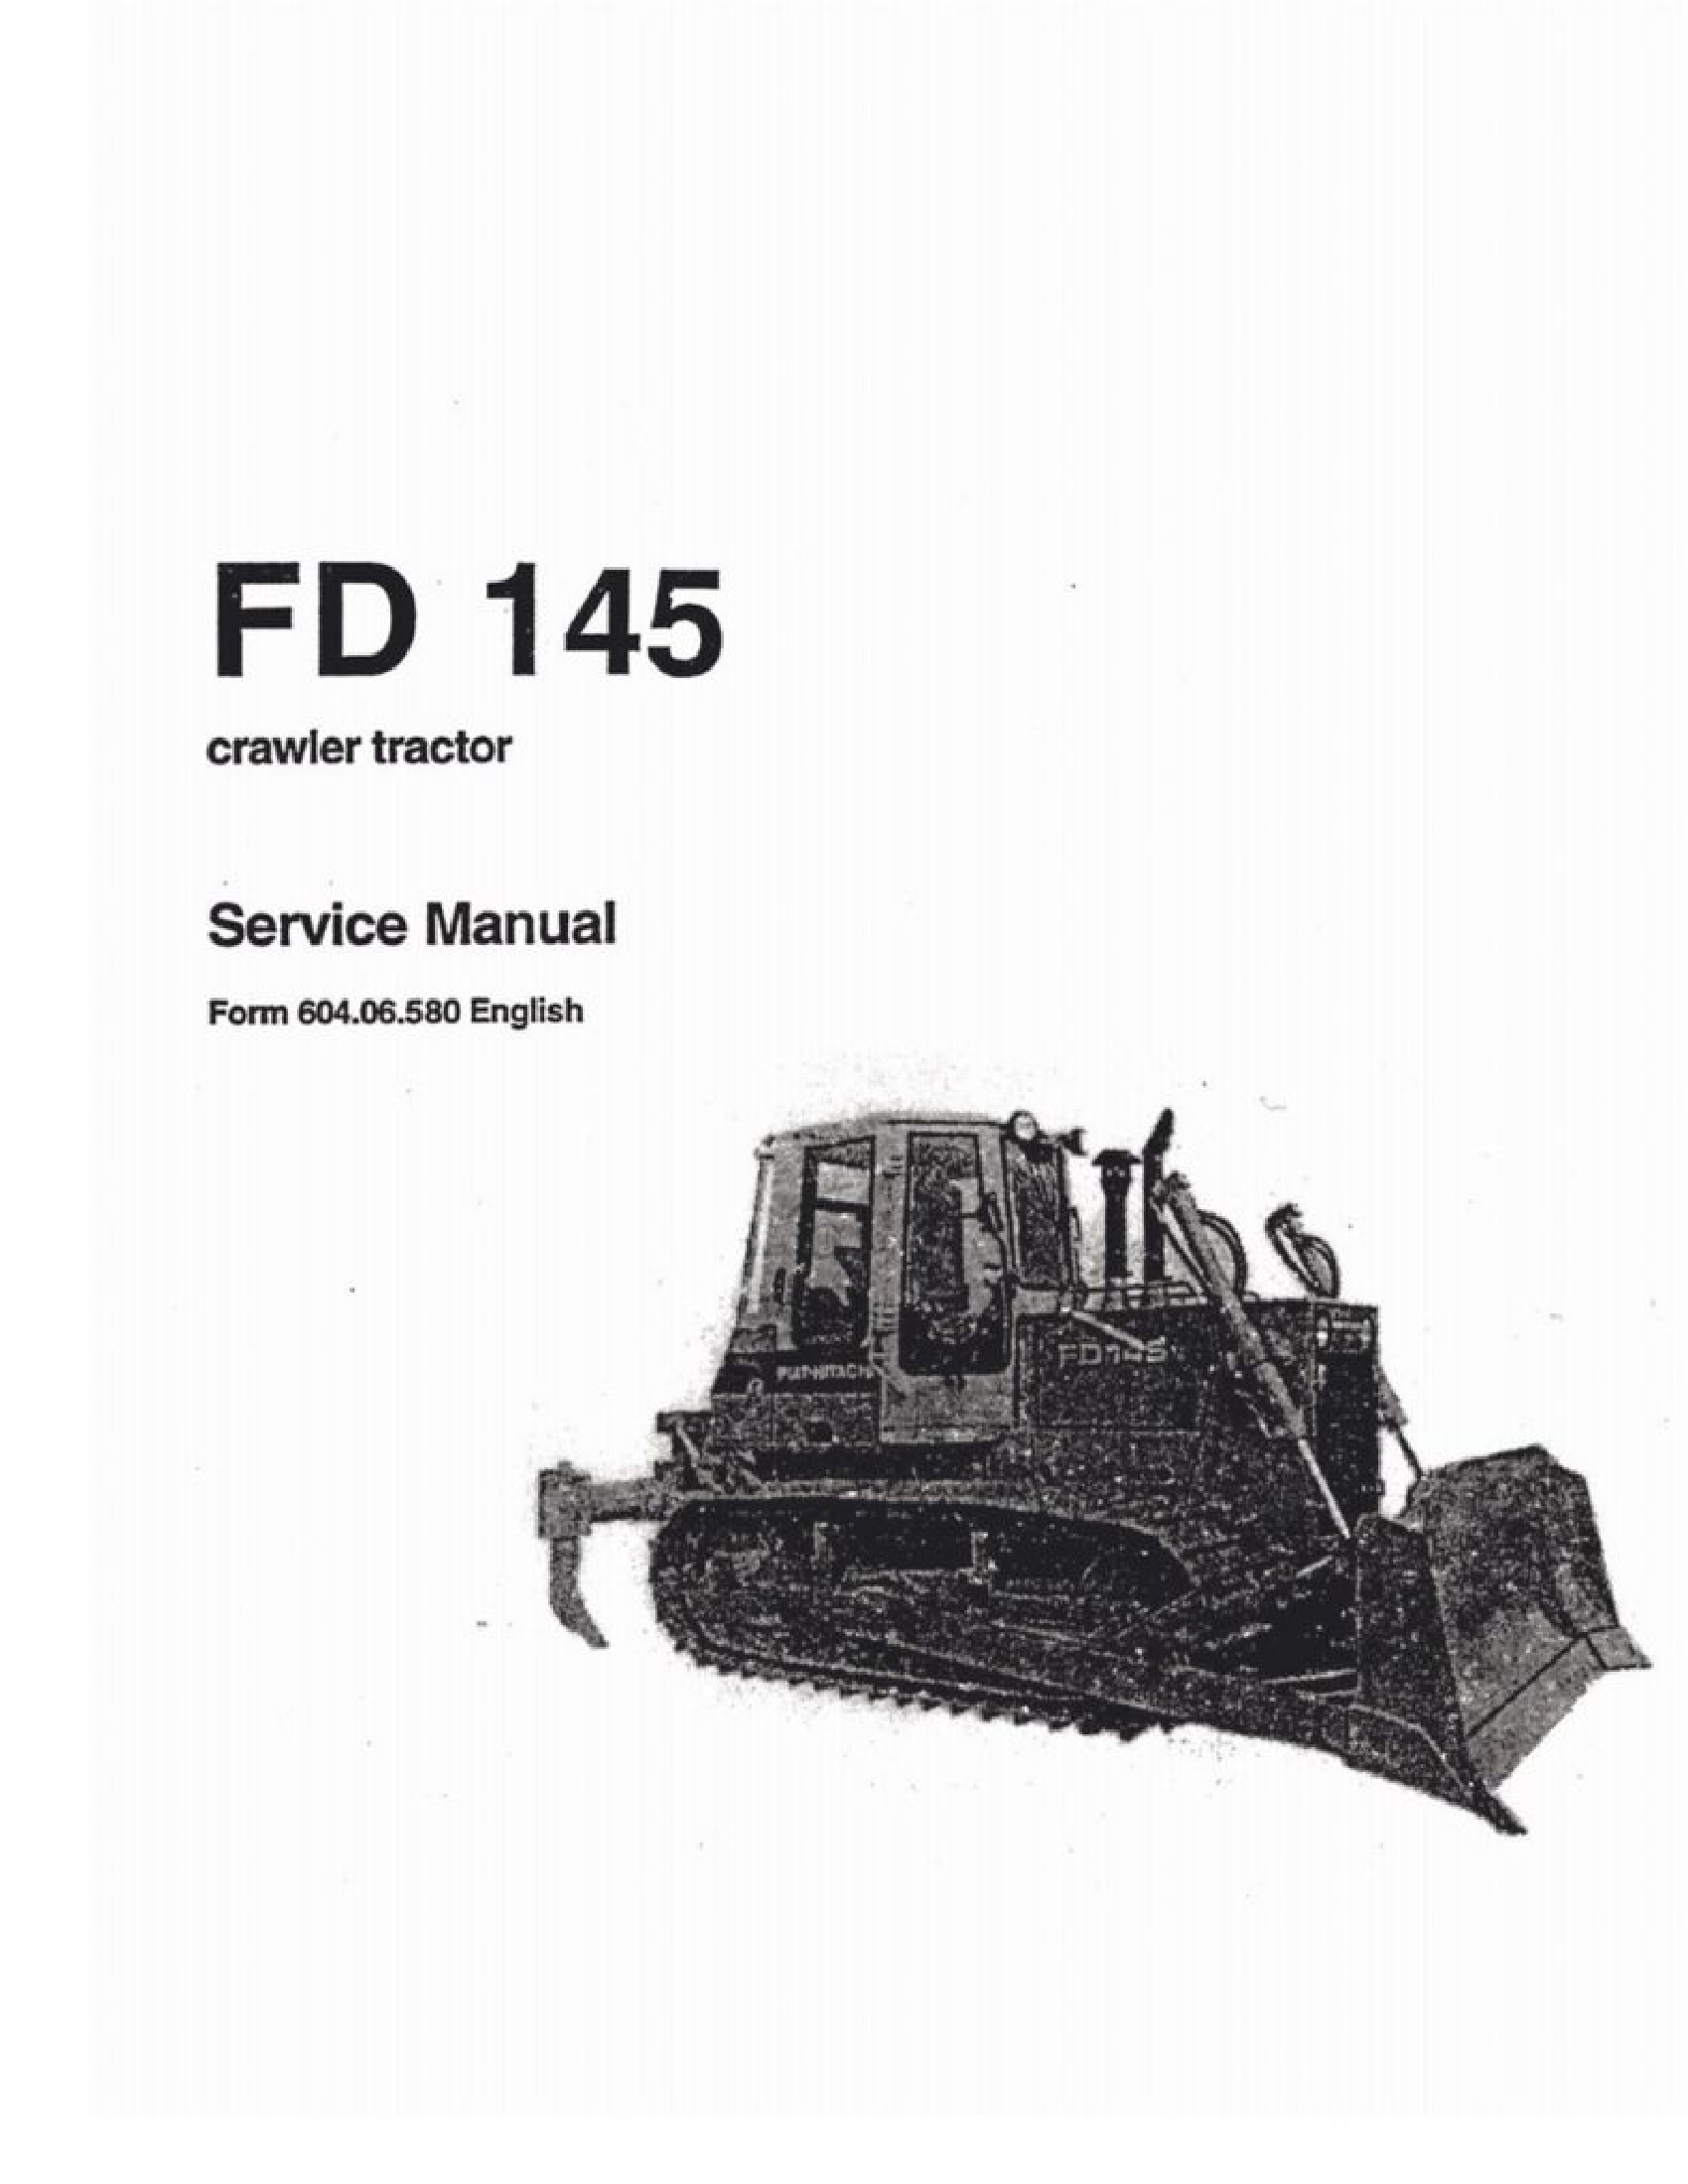 Fiat-Allis 145 FD Crawler Tractor manual